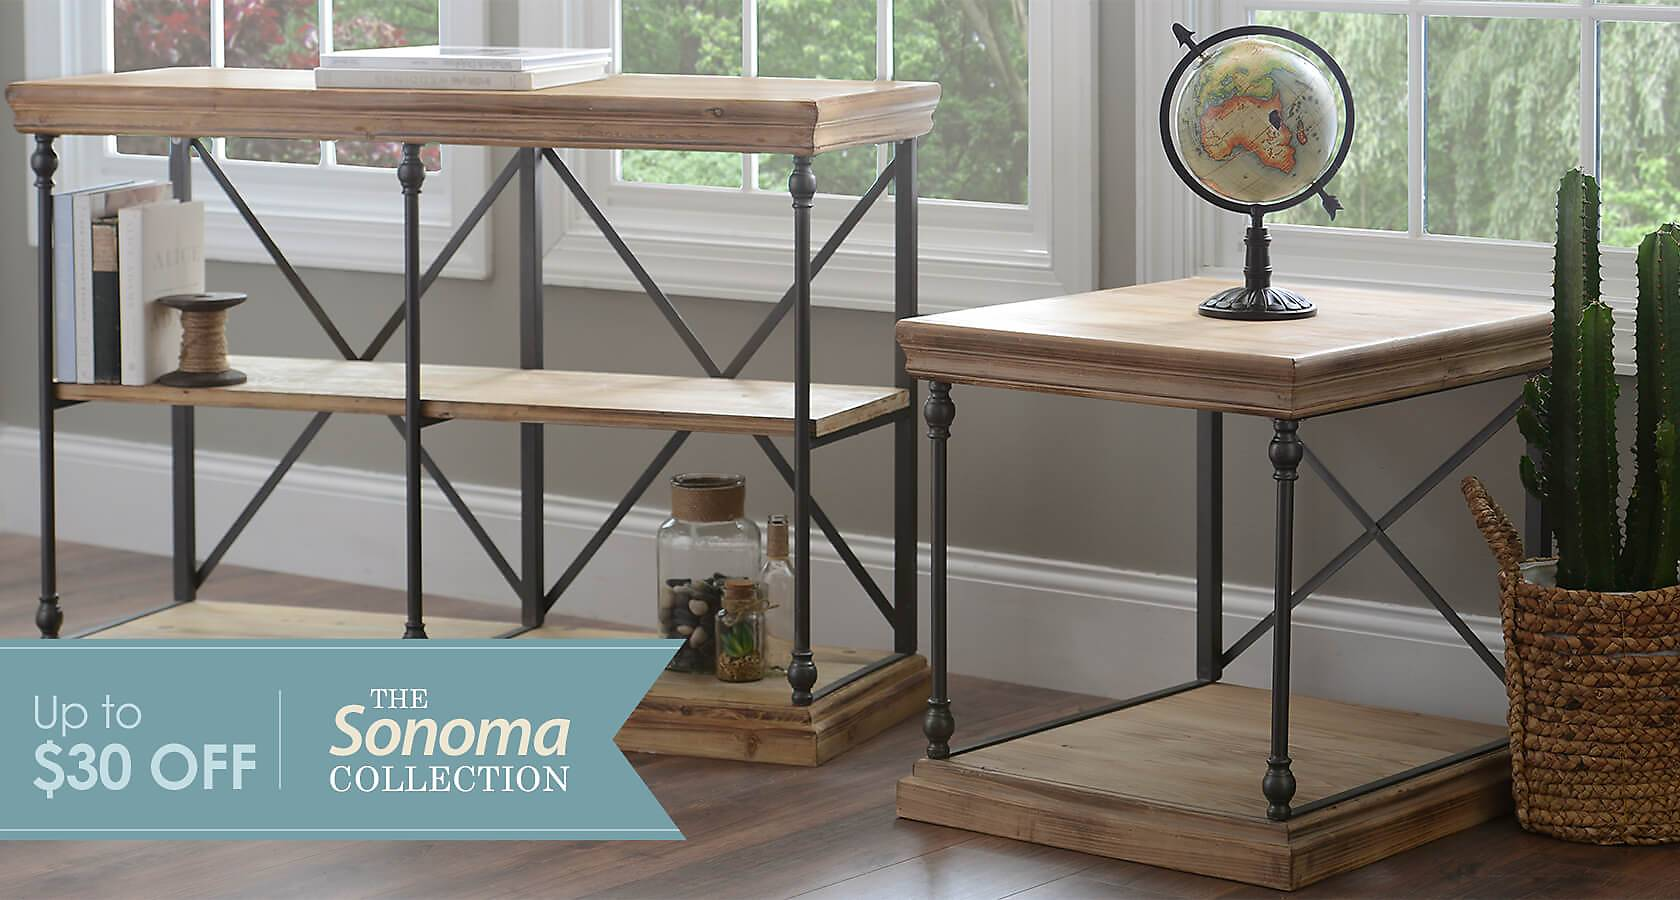 The uuma quot office registration table and center table will be in - Sturdy And Stylish The Sonoma Collection Shop Now